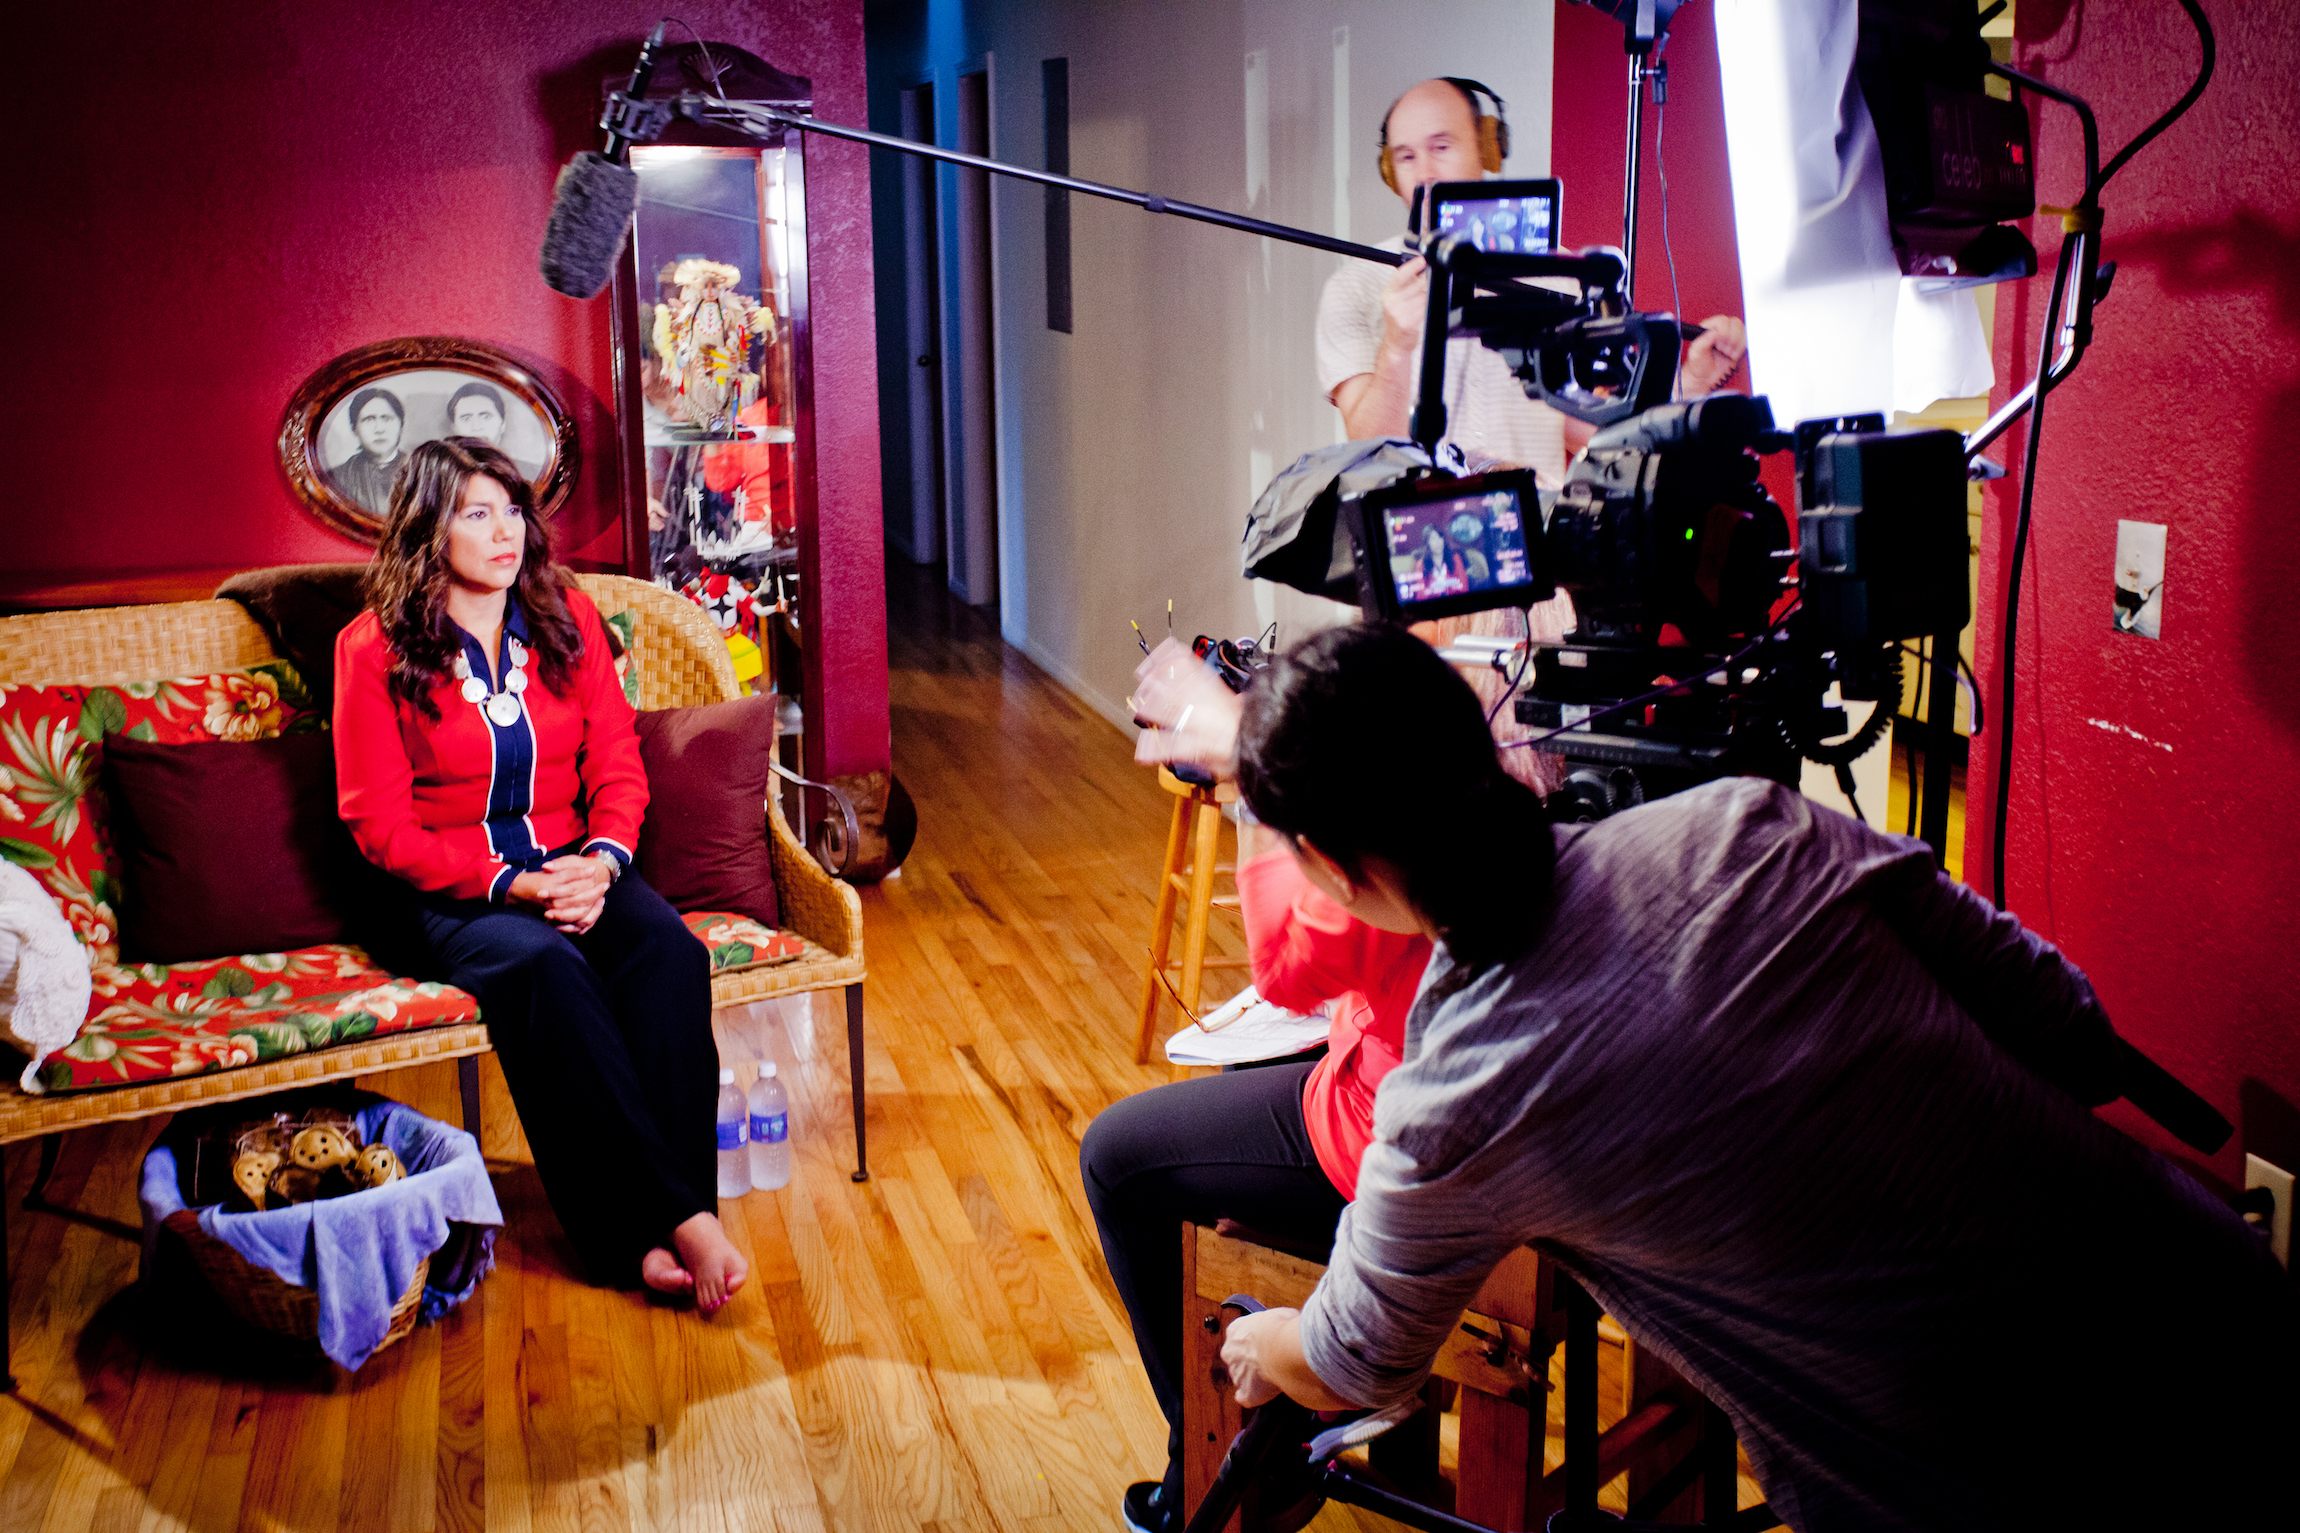 On location in Oklahoma, the Mankiller crew interviews Felicia Olaya, Wilma's daughter, at the Mankiller home.